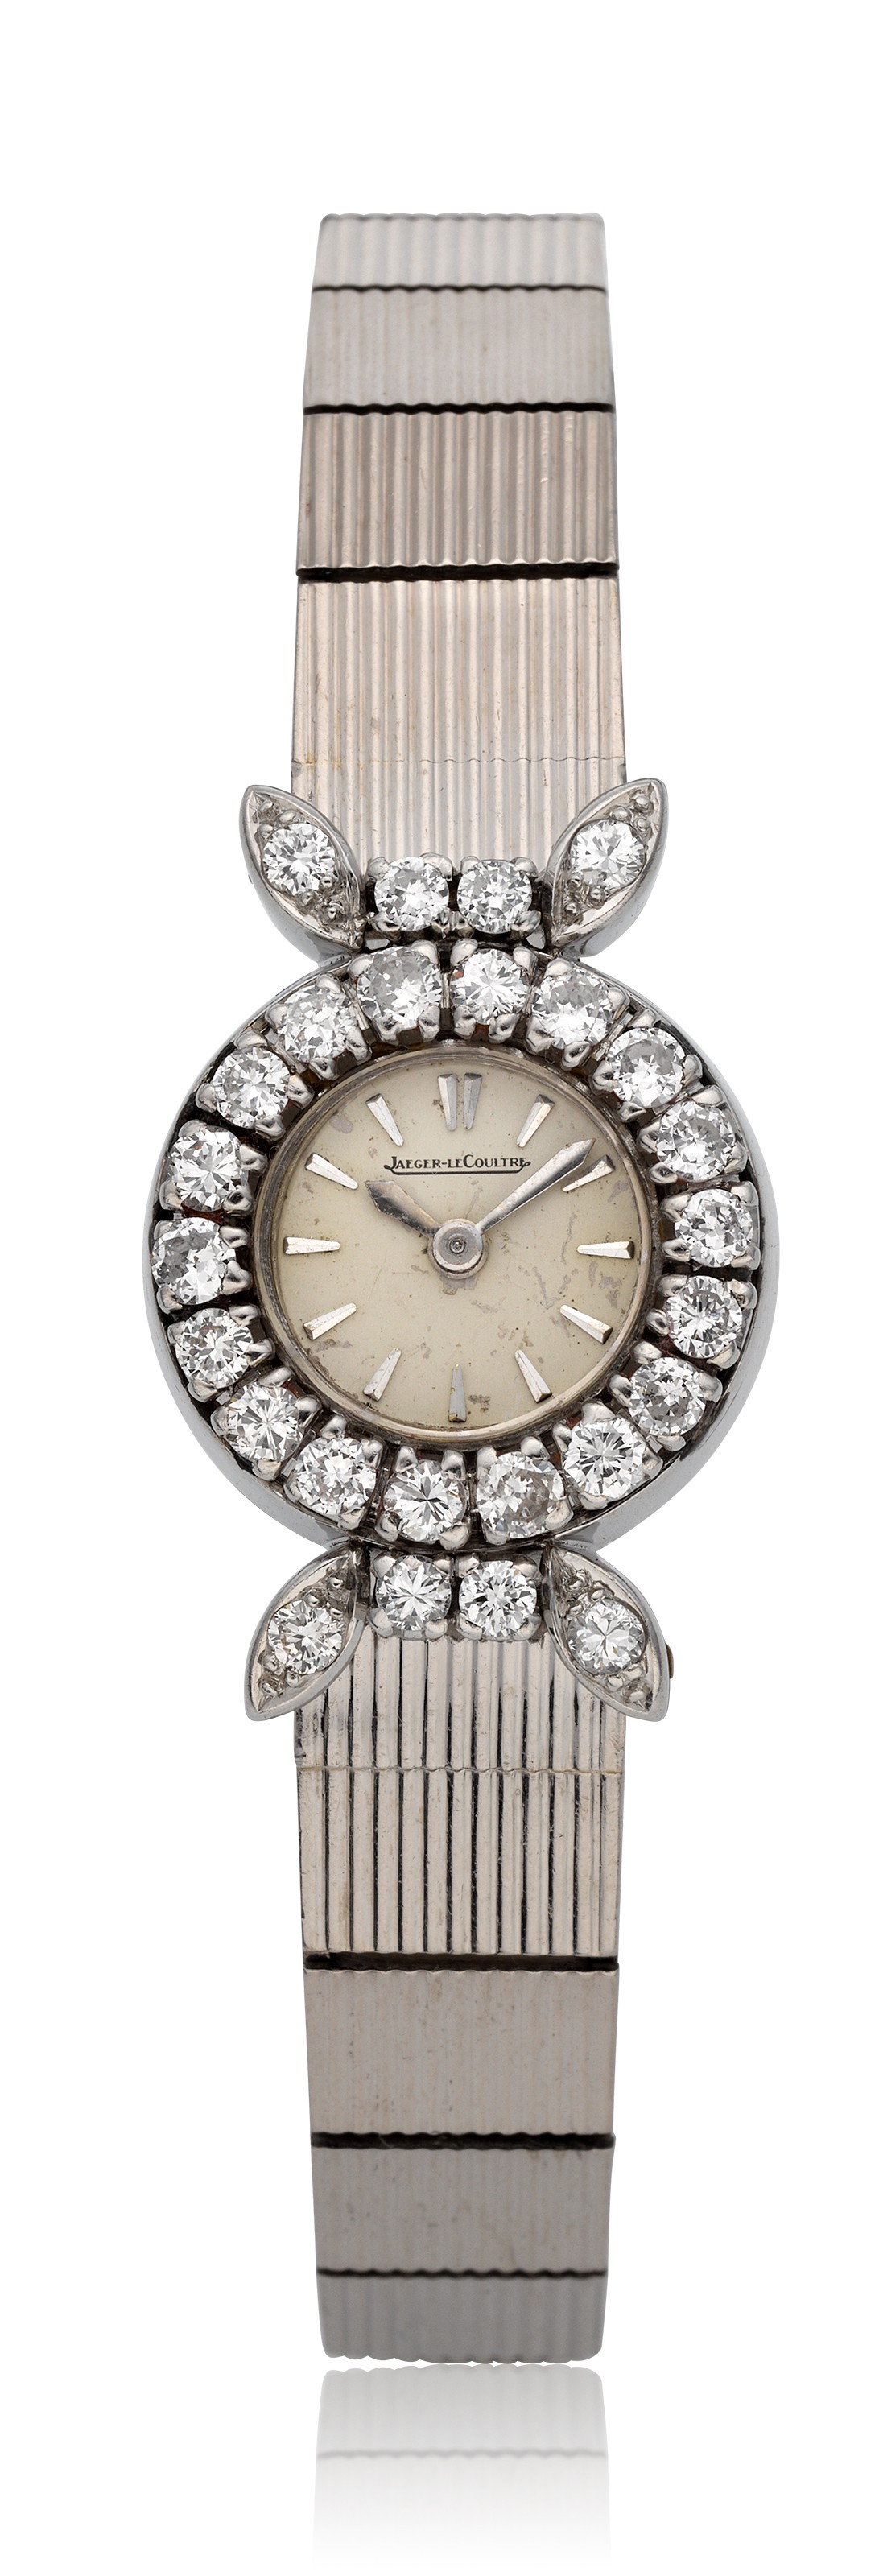 Watches Women's Women's Women's Watches Women's Watches Watches WrBdoxeC